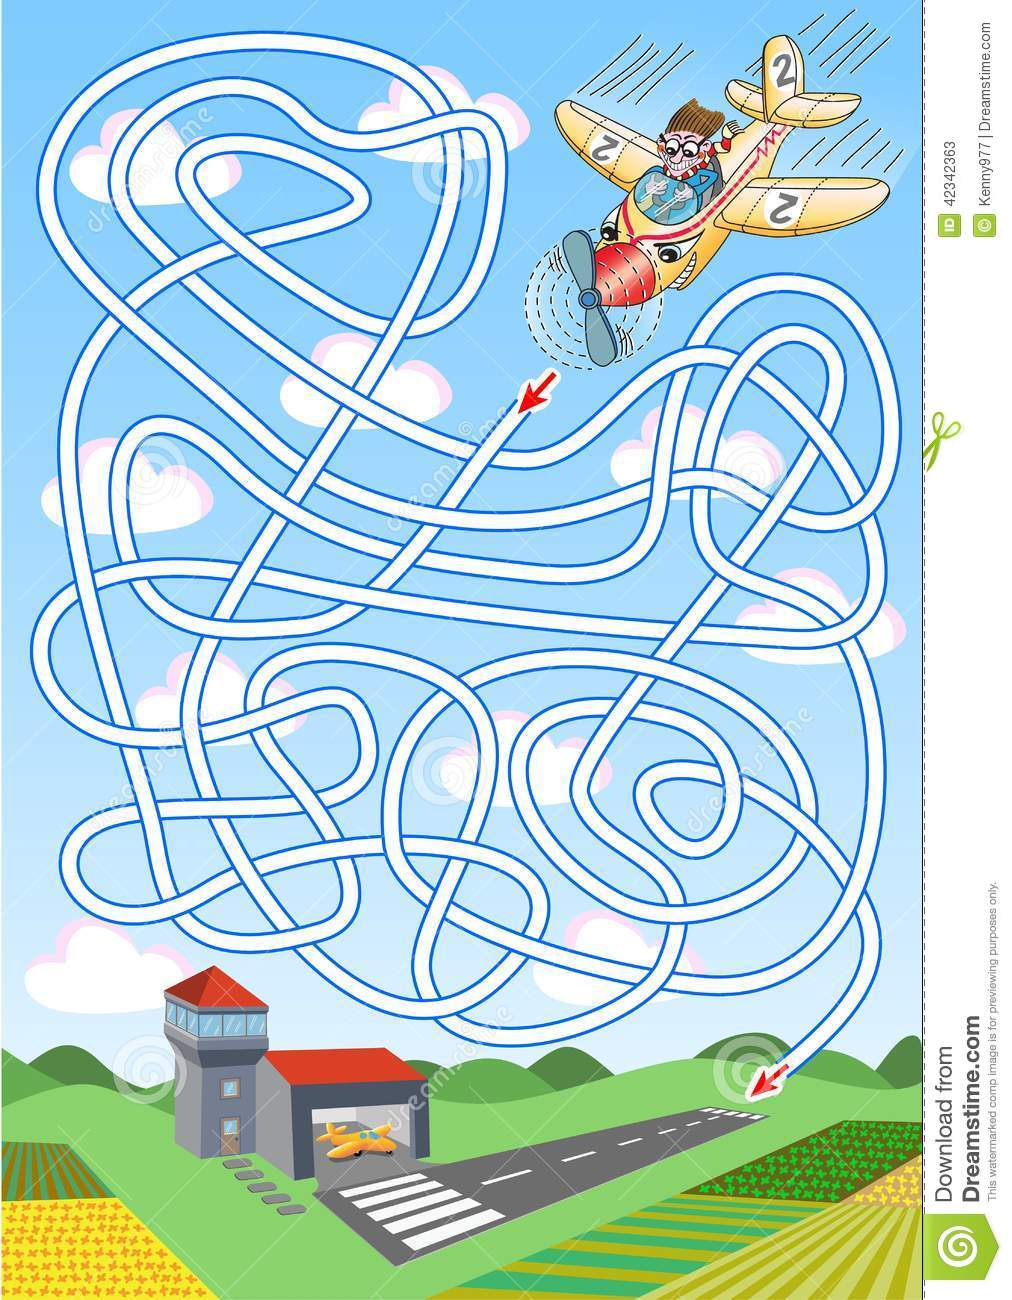 Airplane Maze For Kids Stock Vector - Image: 42342363